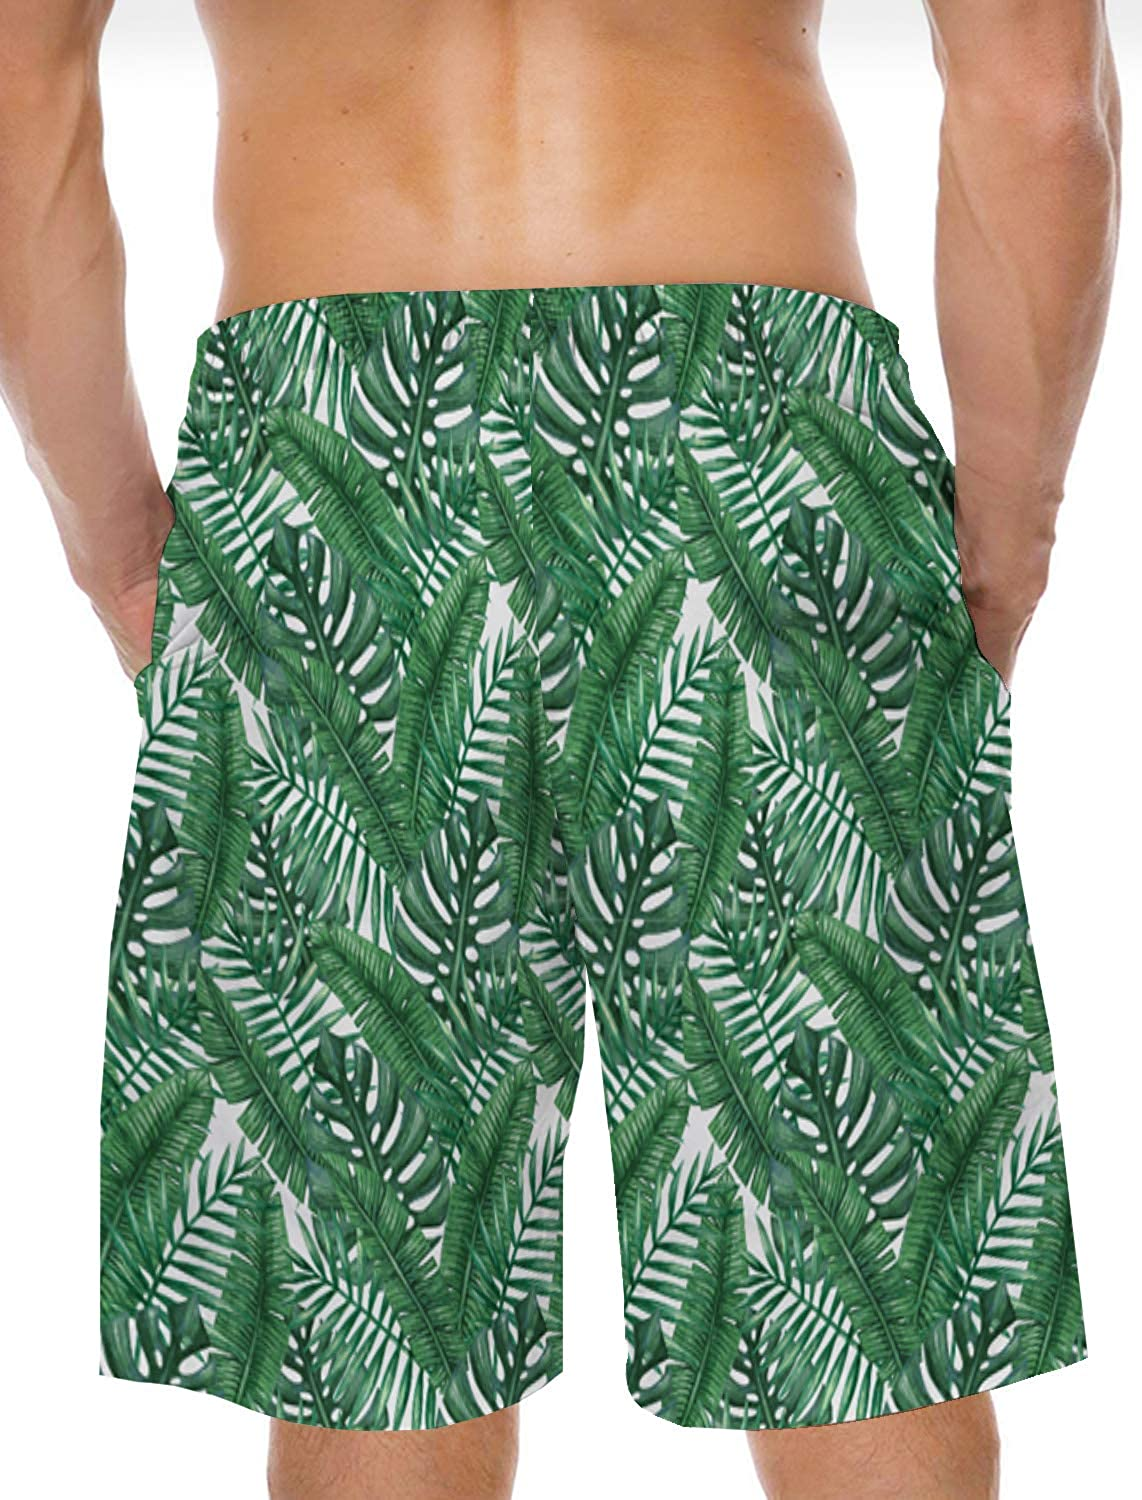 Mens Swim Trunks 5 Board Shorts Tropica Palm Leaf Printed Quick Dry Beach Shorts with Lining Mesh for Summer Holiday